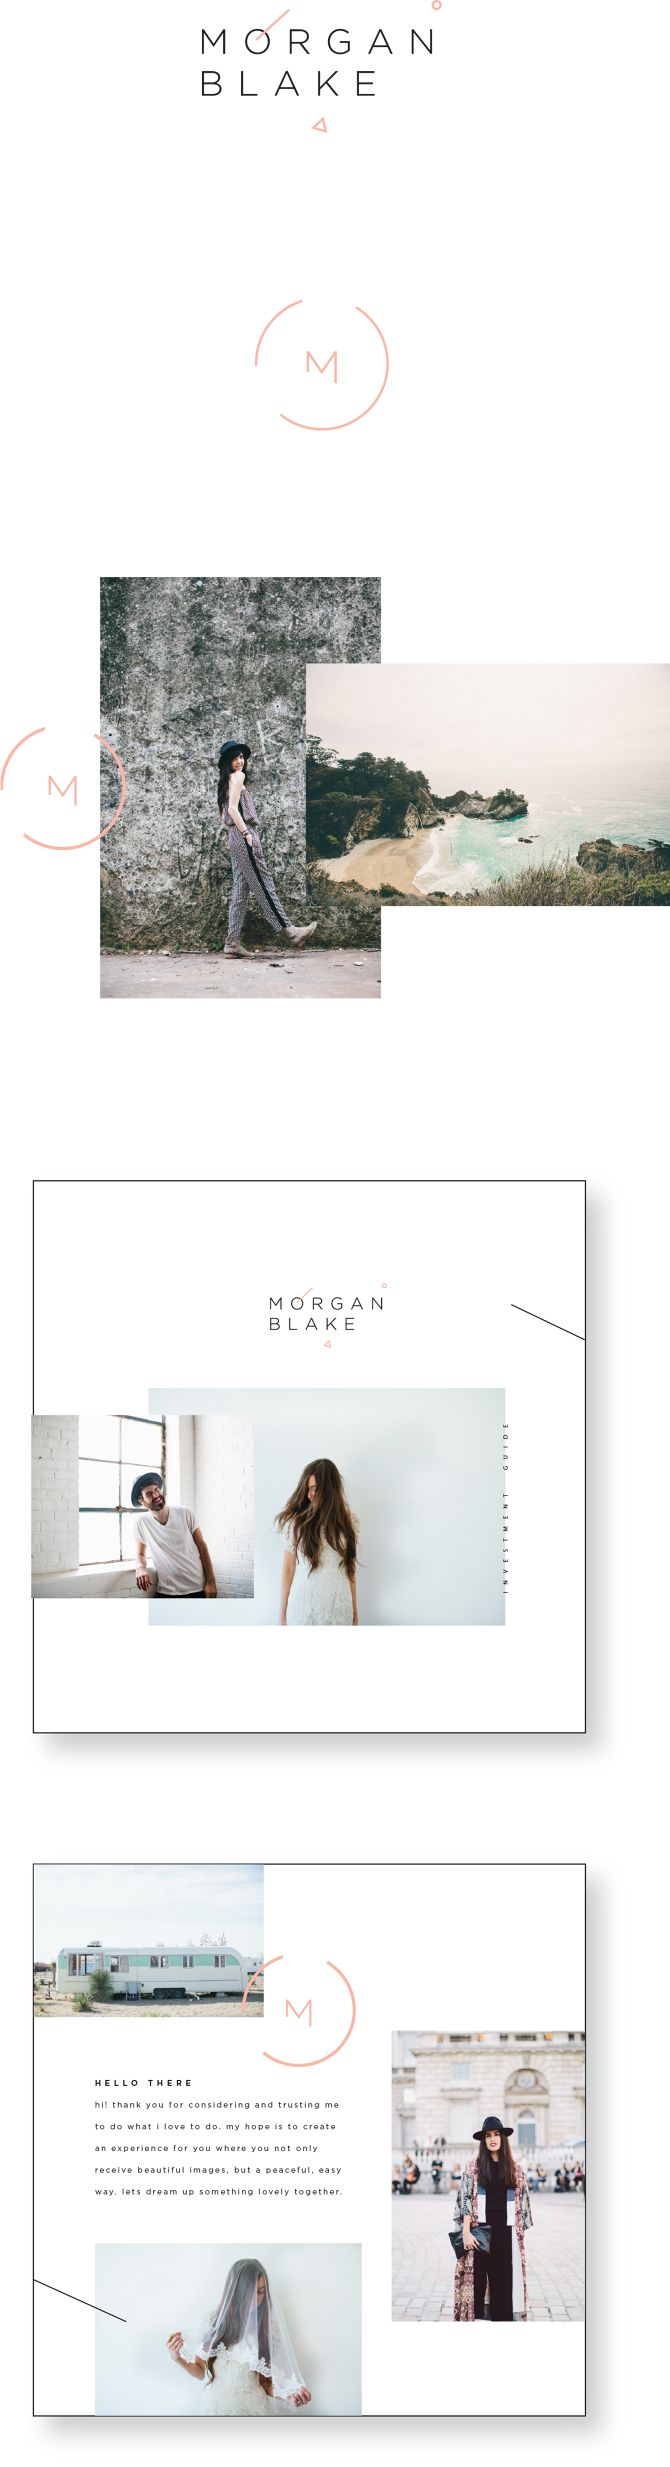 I cant even tell if this is a website but I really like the spacing and the call out type alligned on the side of the photos